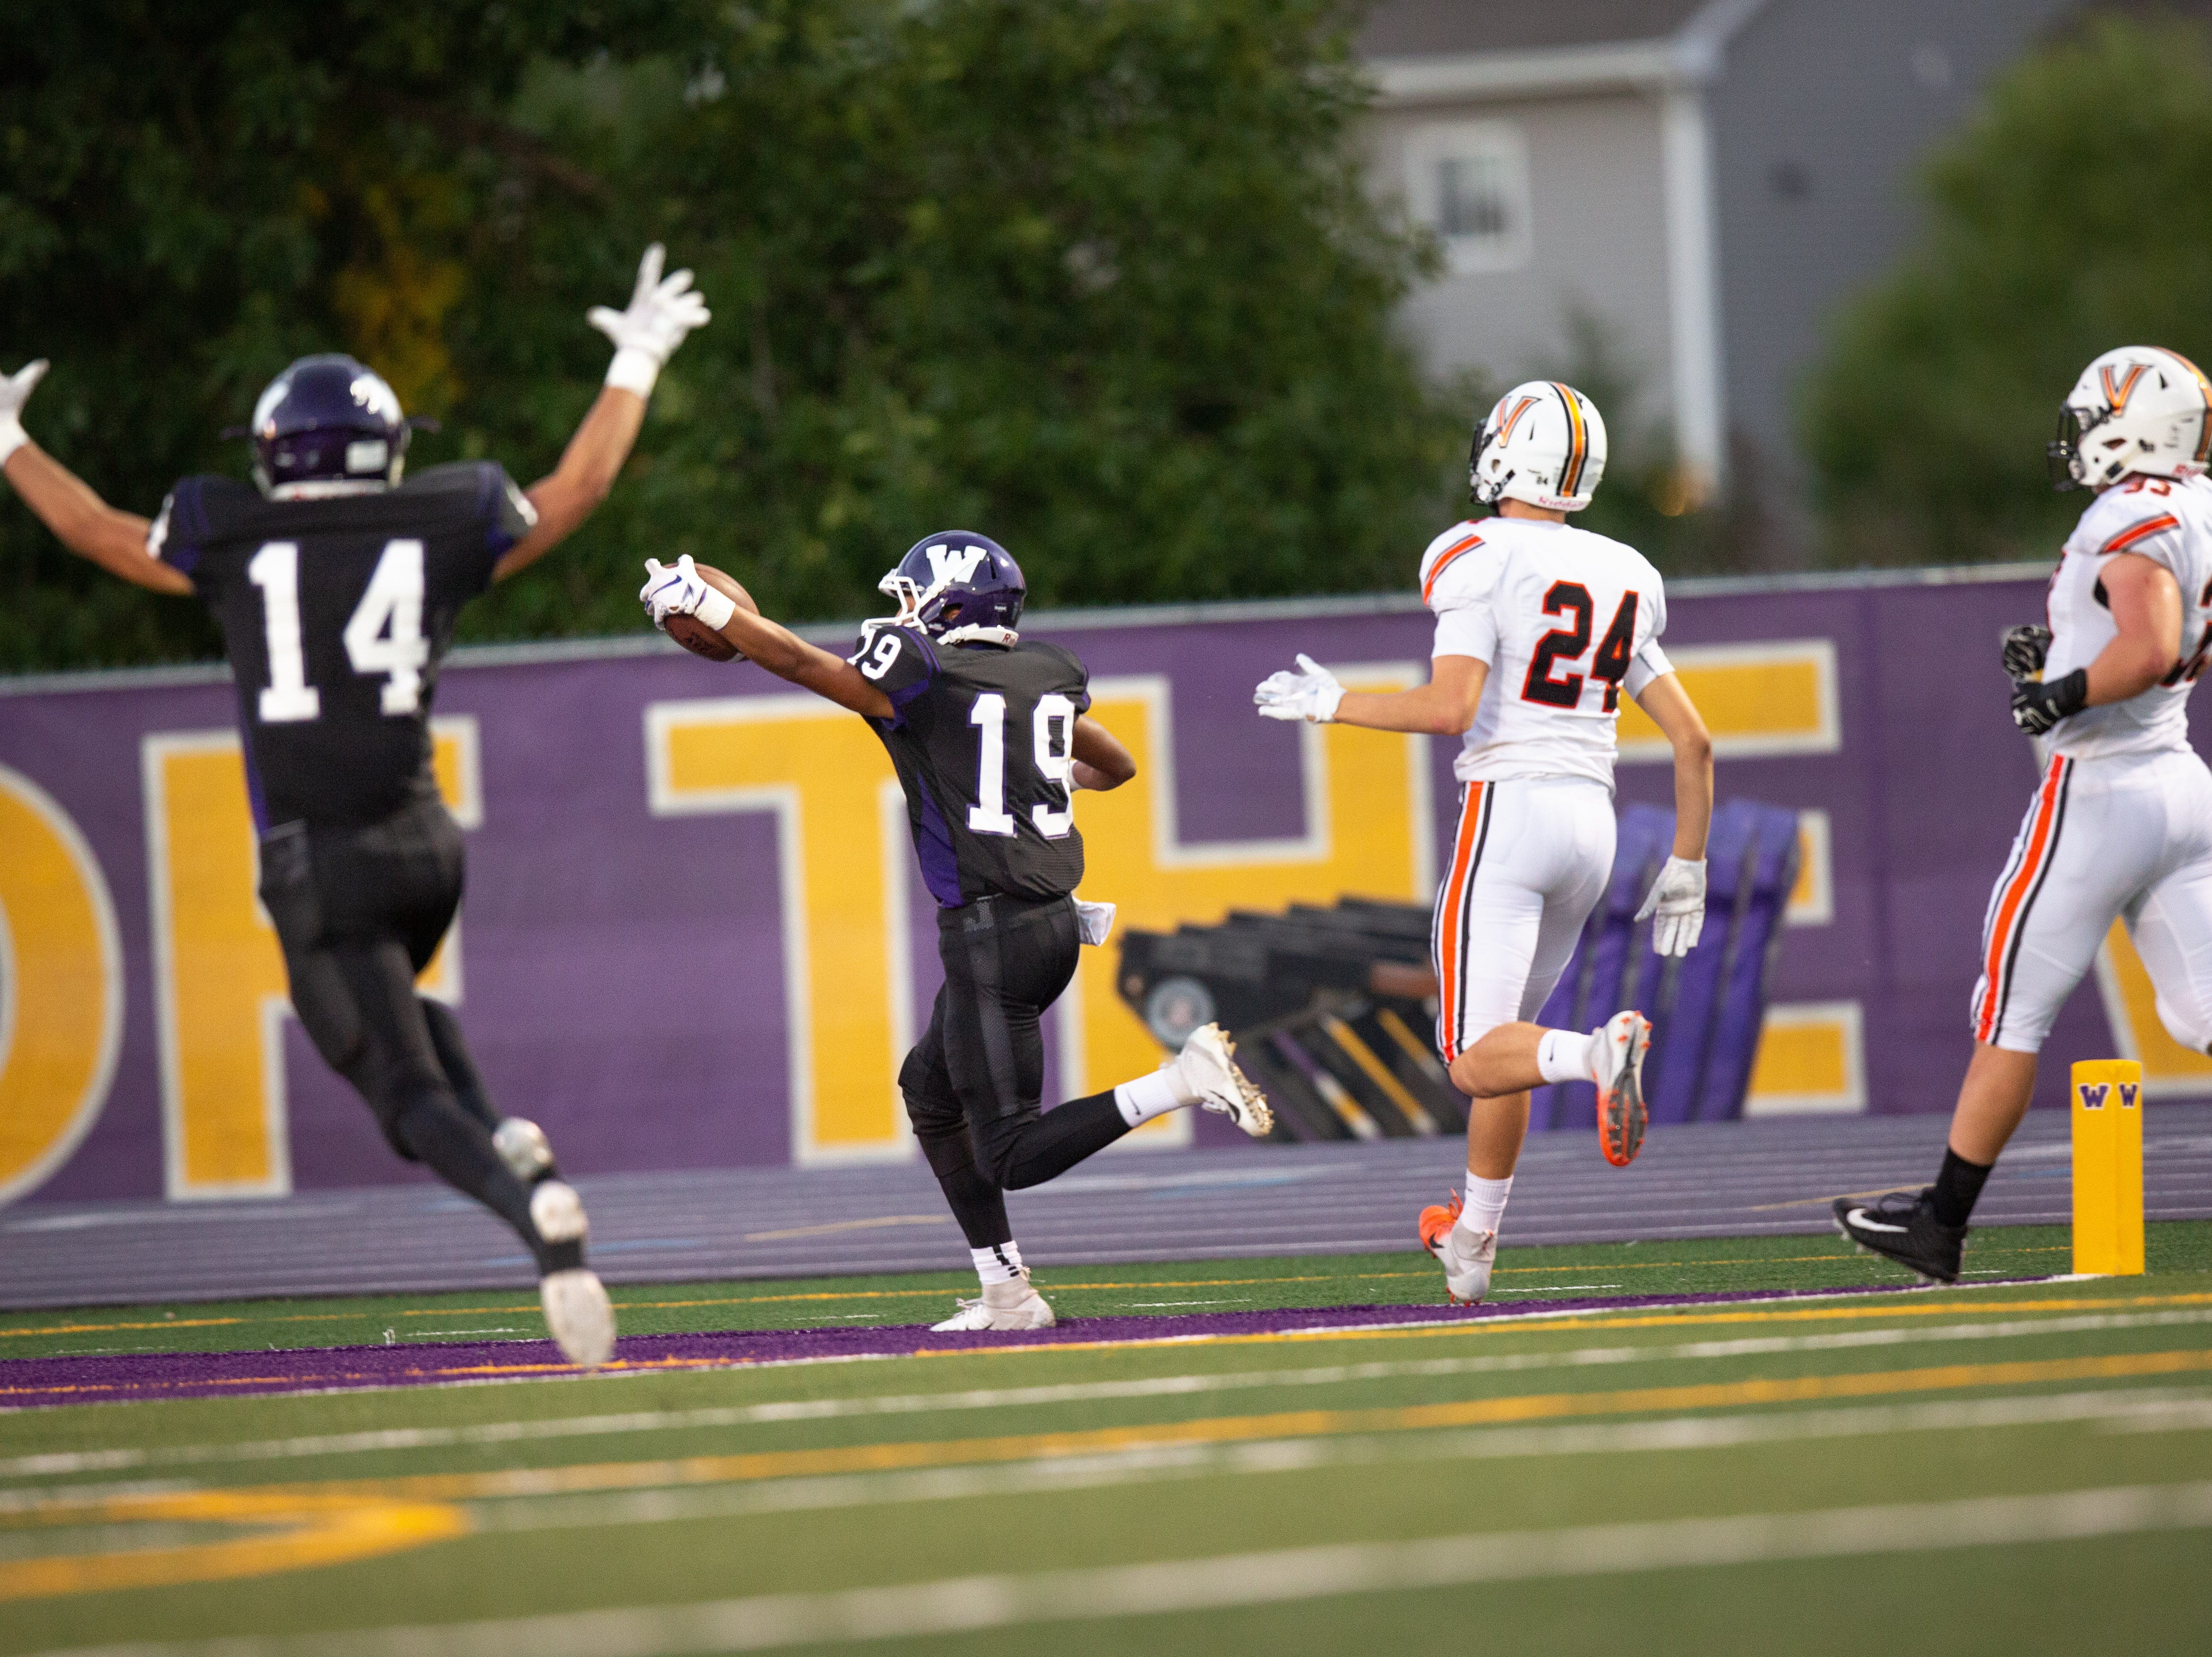 Waukee High School's Zach Gaines (19) runs into the end zone ahead of Valley's Drew Jirak (24) in the first quarter Friday, Sept. 14, 2018, at Waukee Stadium.